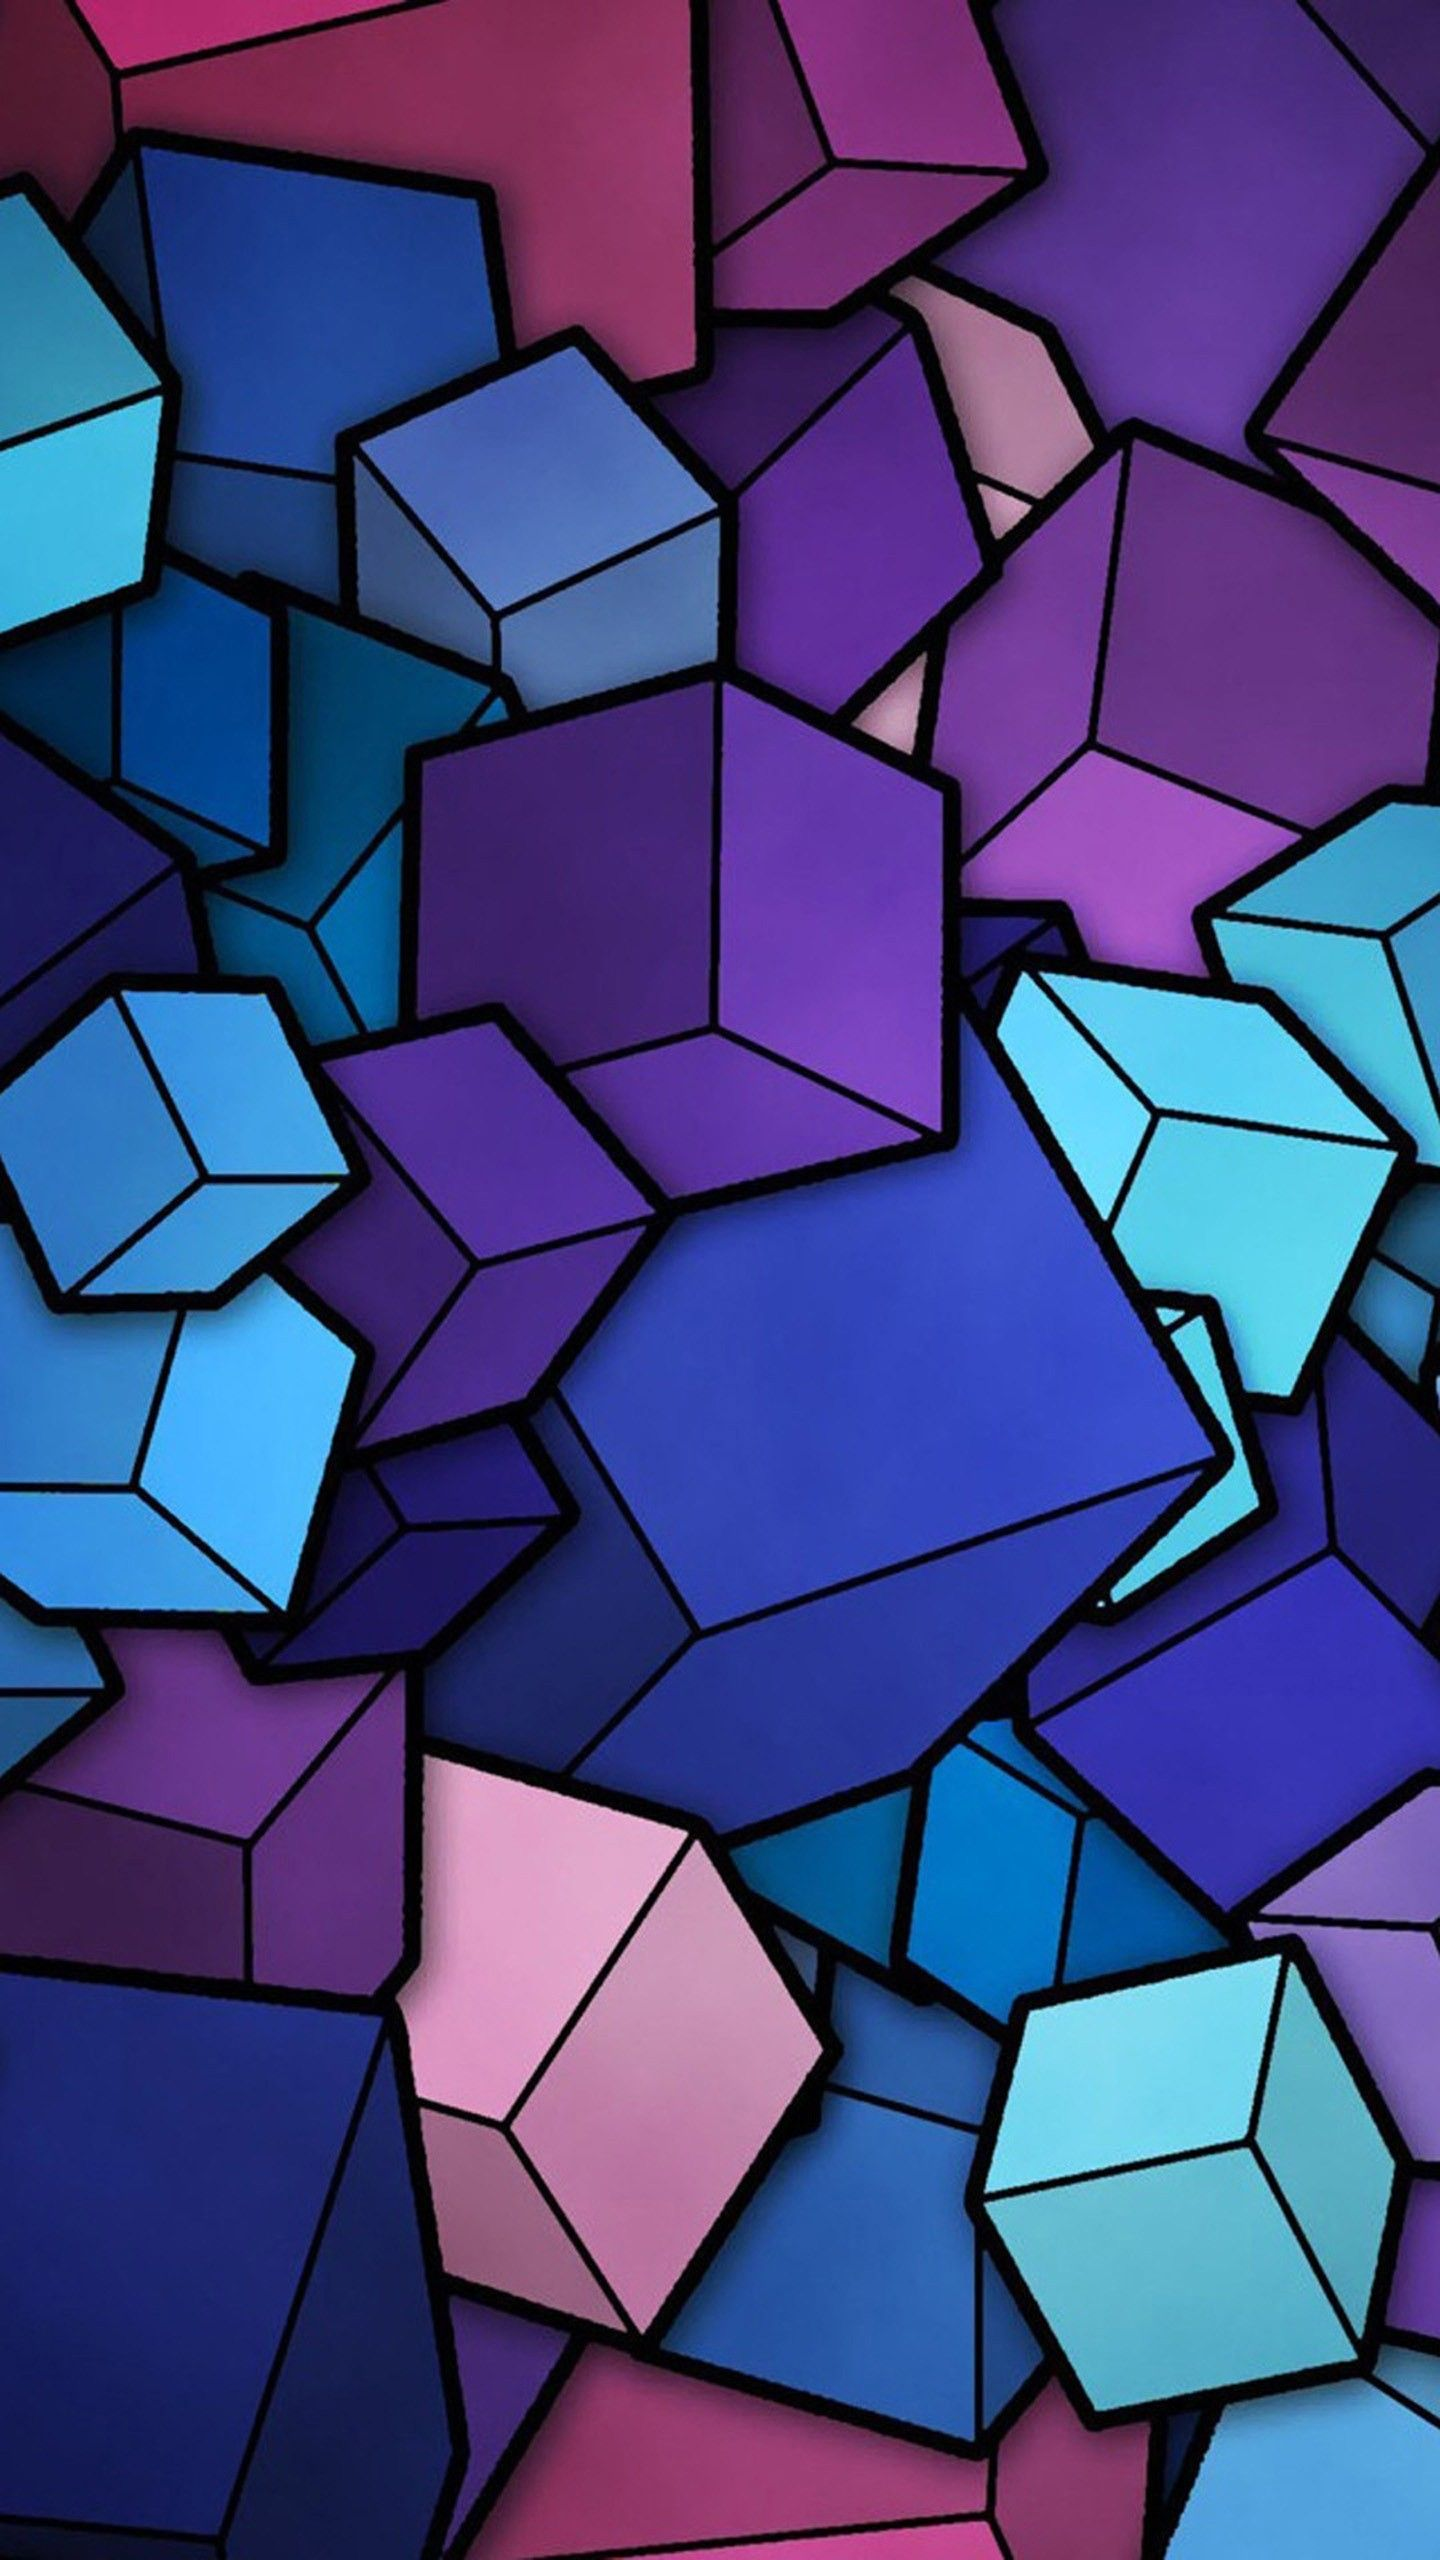 1440x2560 Abstract Cubes Blue Purple Wallpaper Galaxy S6 Lg G4 Htc One M9 Abstract Iphone Wallpaper Cool Wallpapers For Phones Abstract Wallpaper